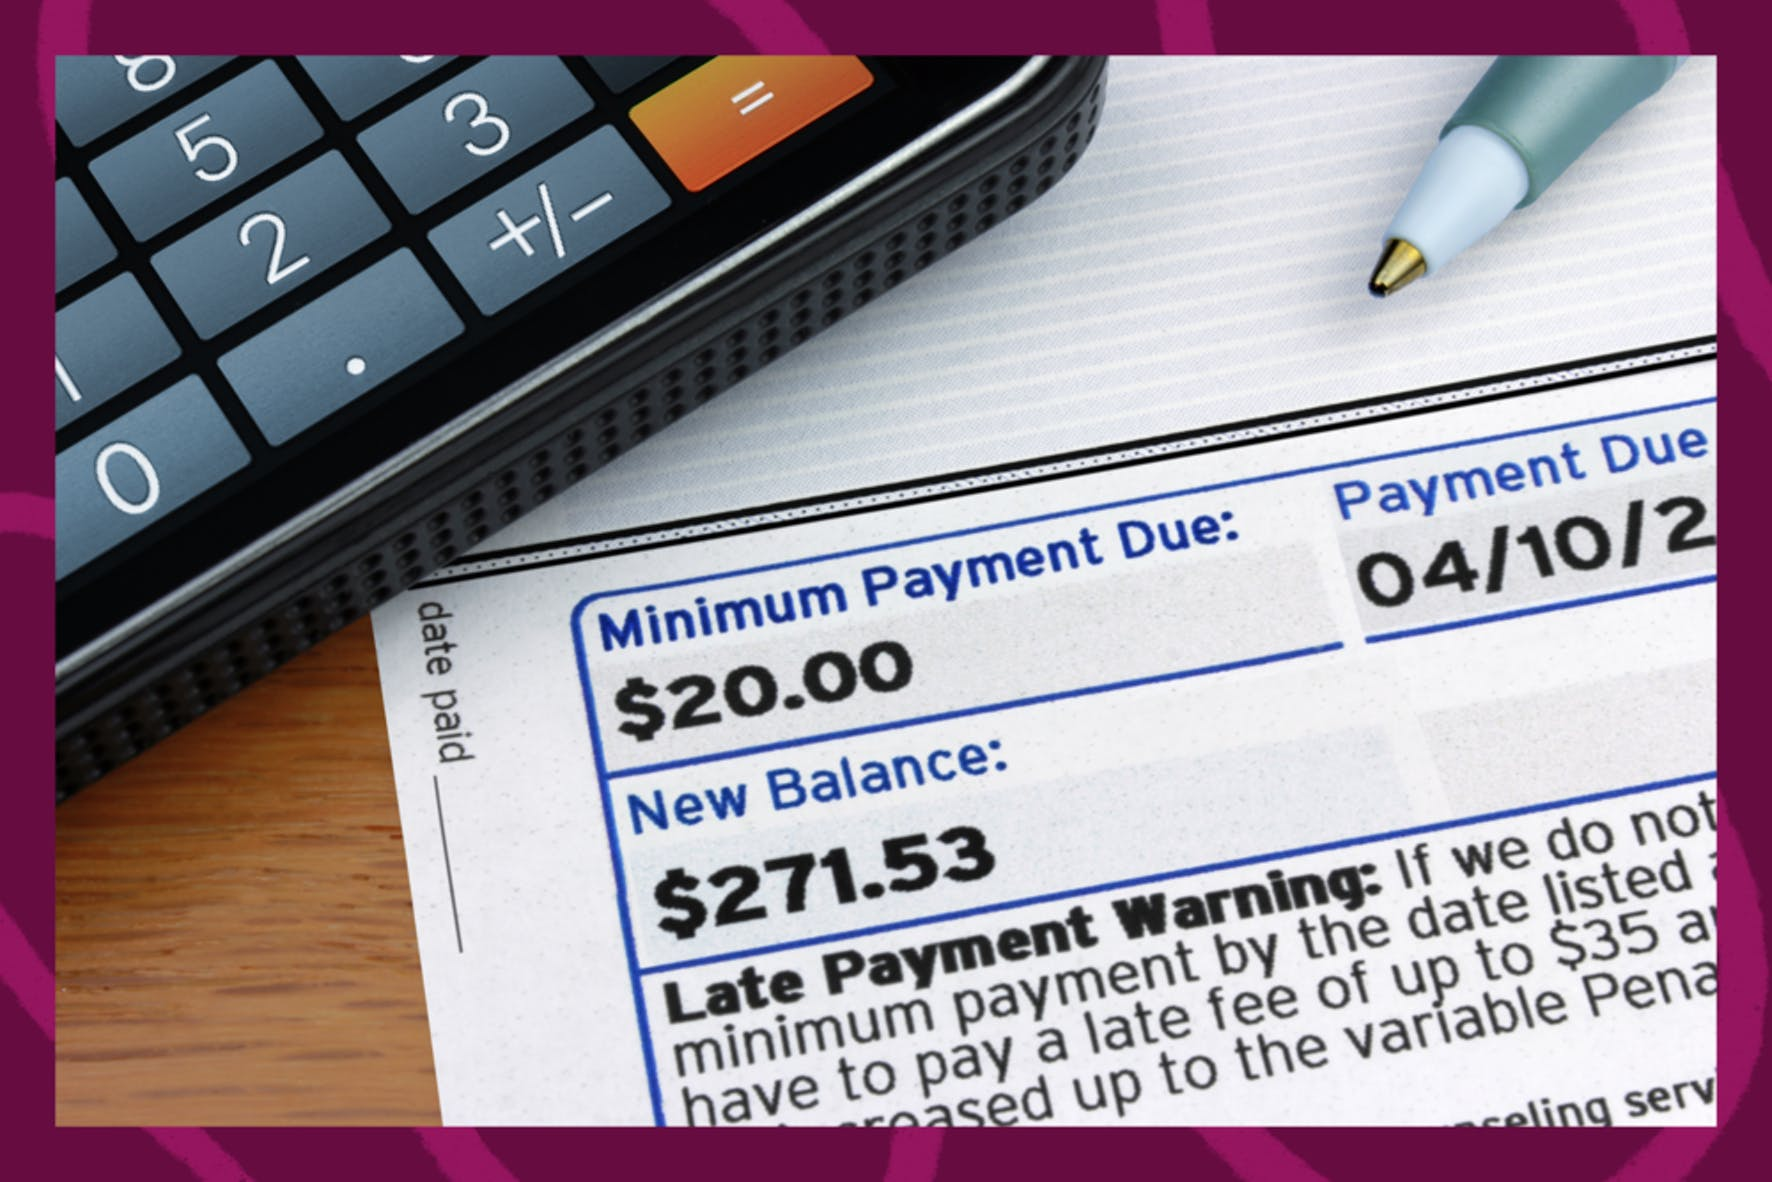 Making on time credit card payments to build your credit as an authorized user